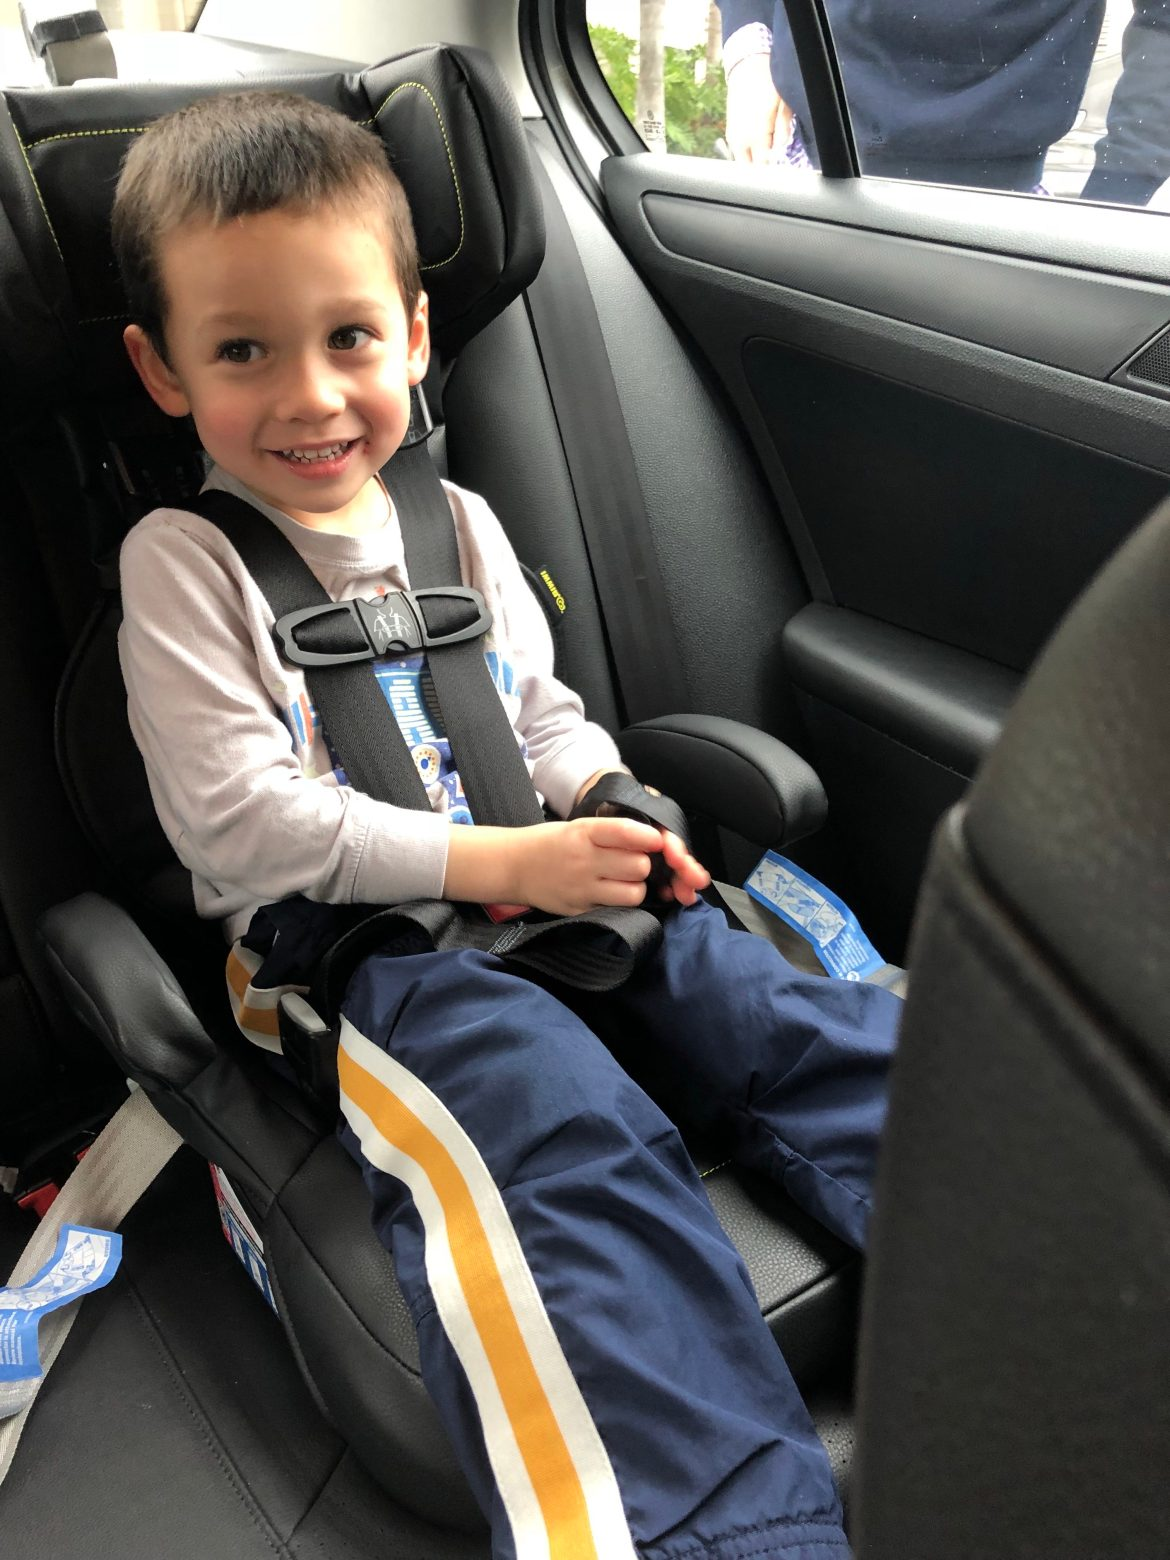 My Three Year Old Was Absolutely Thrilled To Sit In The IMMI GO Hes Still A Convertible Car Seat At Home So This Big Step Up For Him